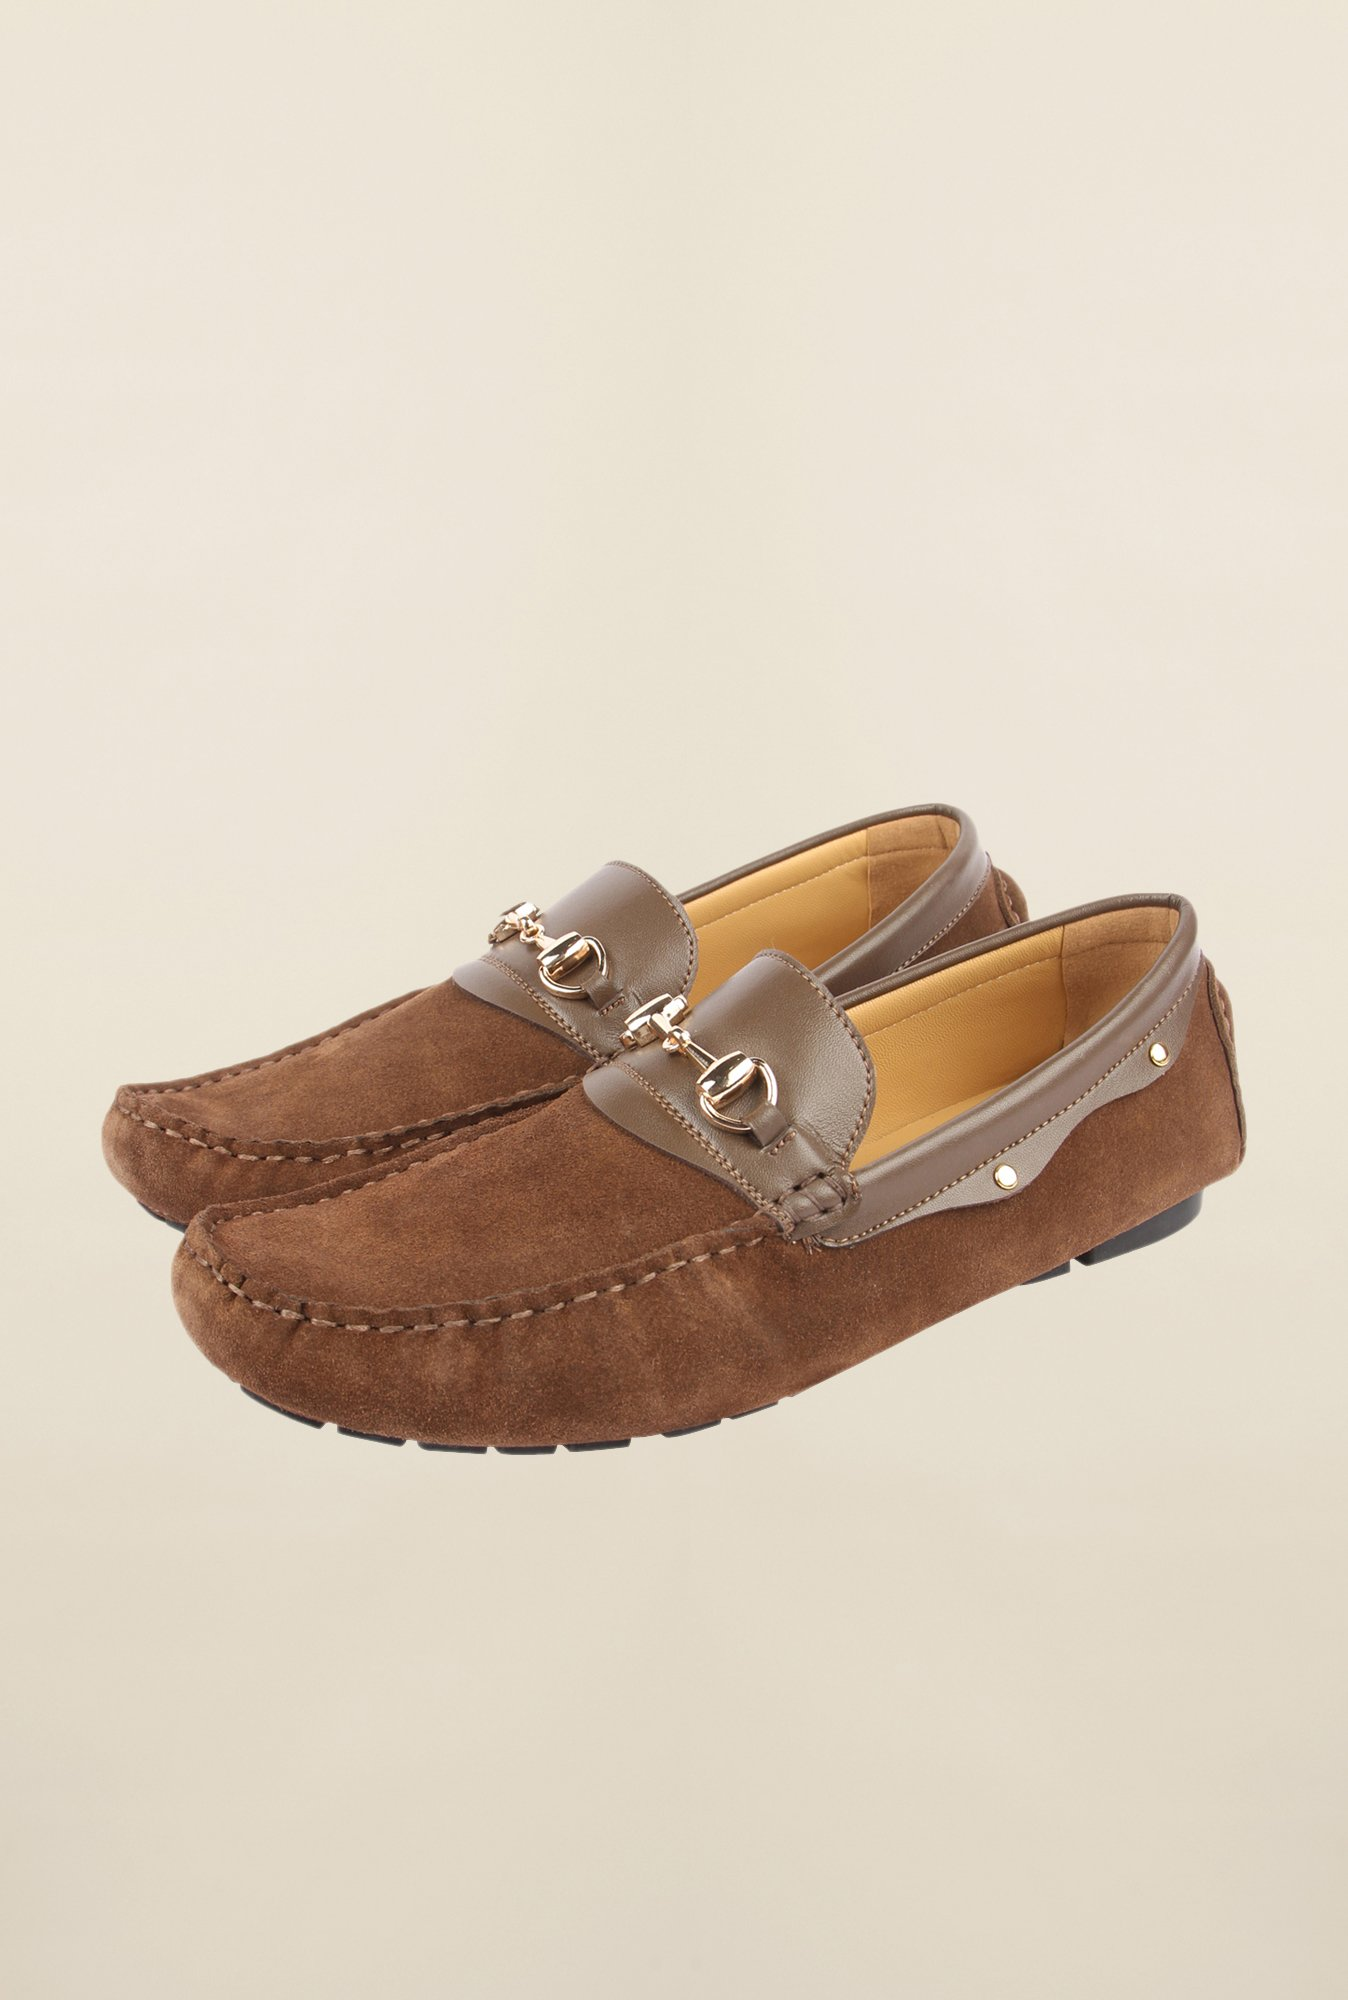 Cobblerz Camel Moccasin Shoes